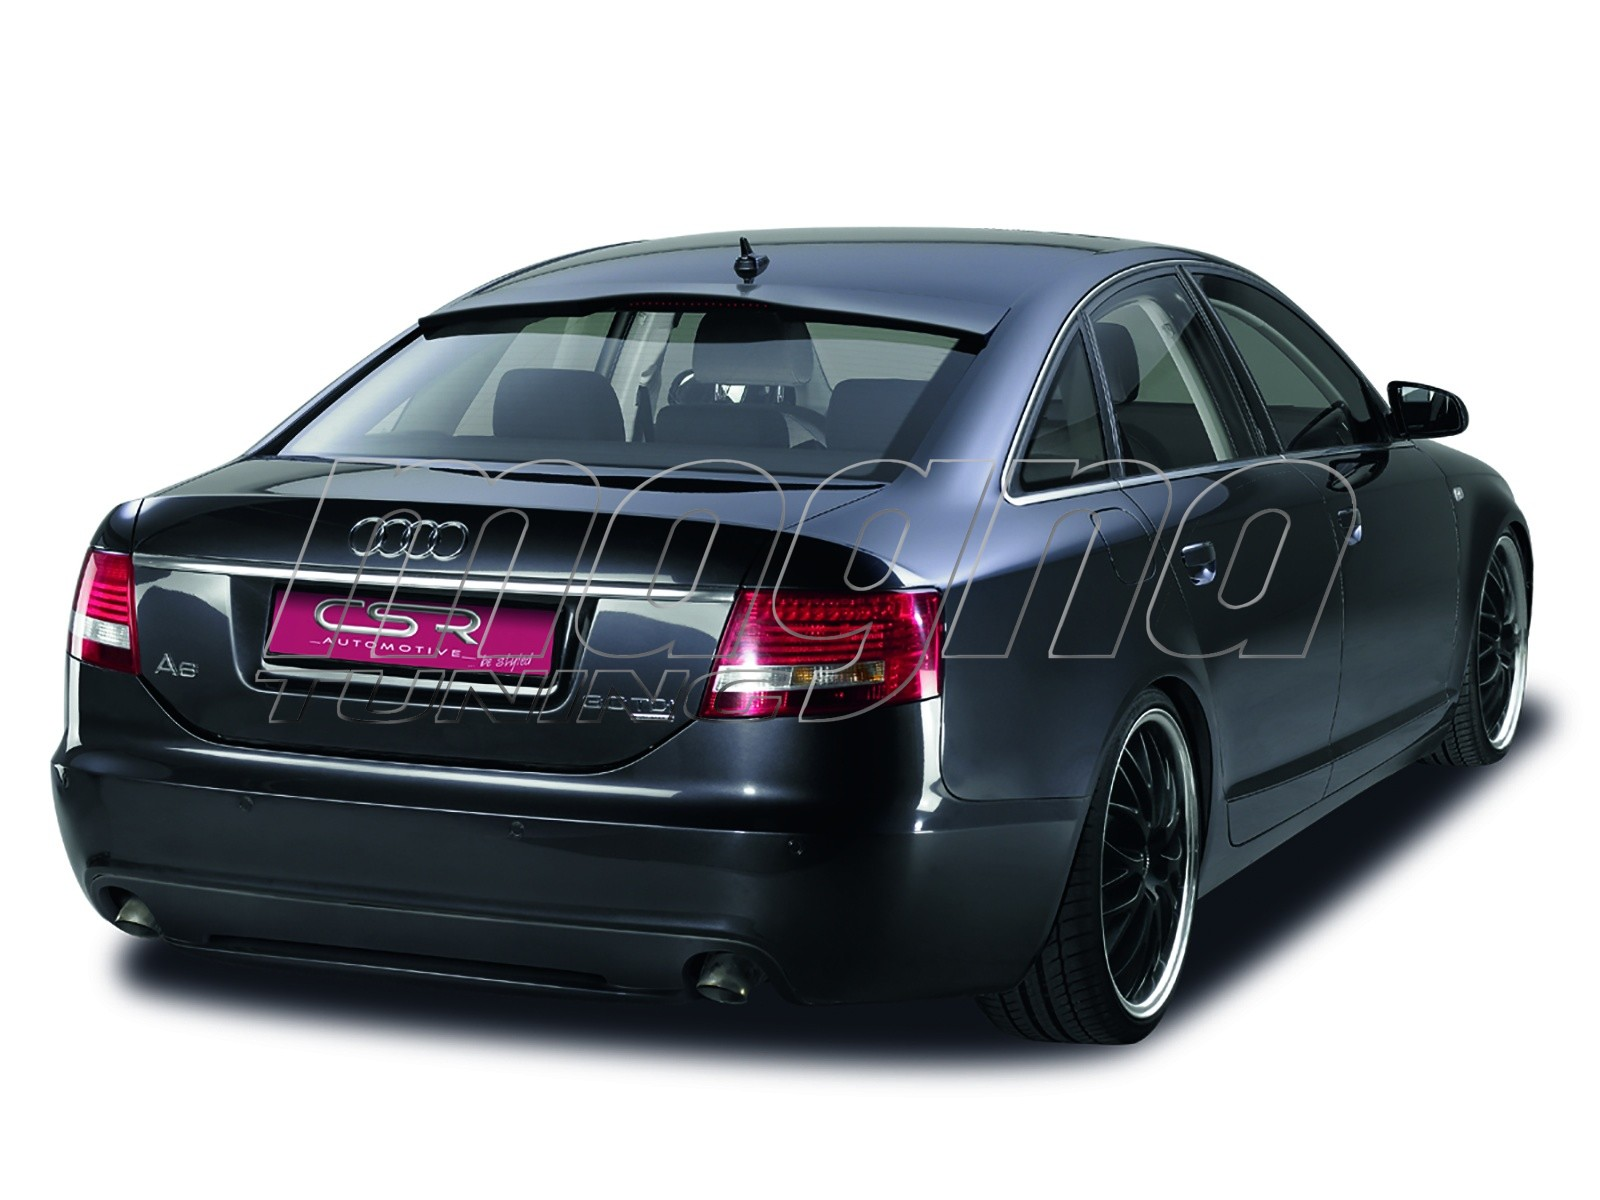 Audi a6 c6 4f limousine xl line rear bumper extension for Audi a6 4f interieur